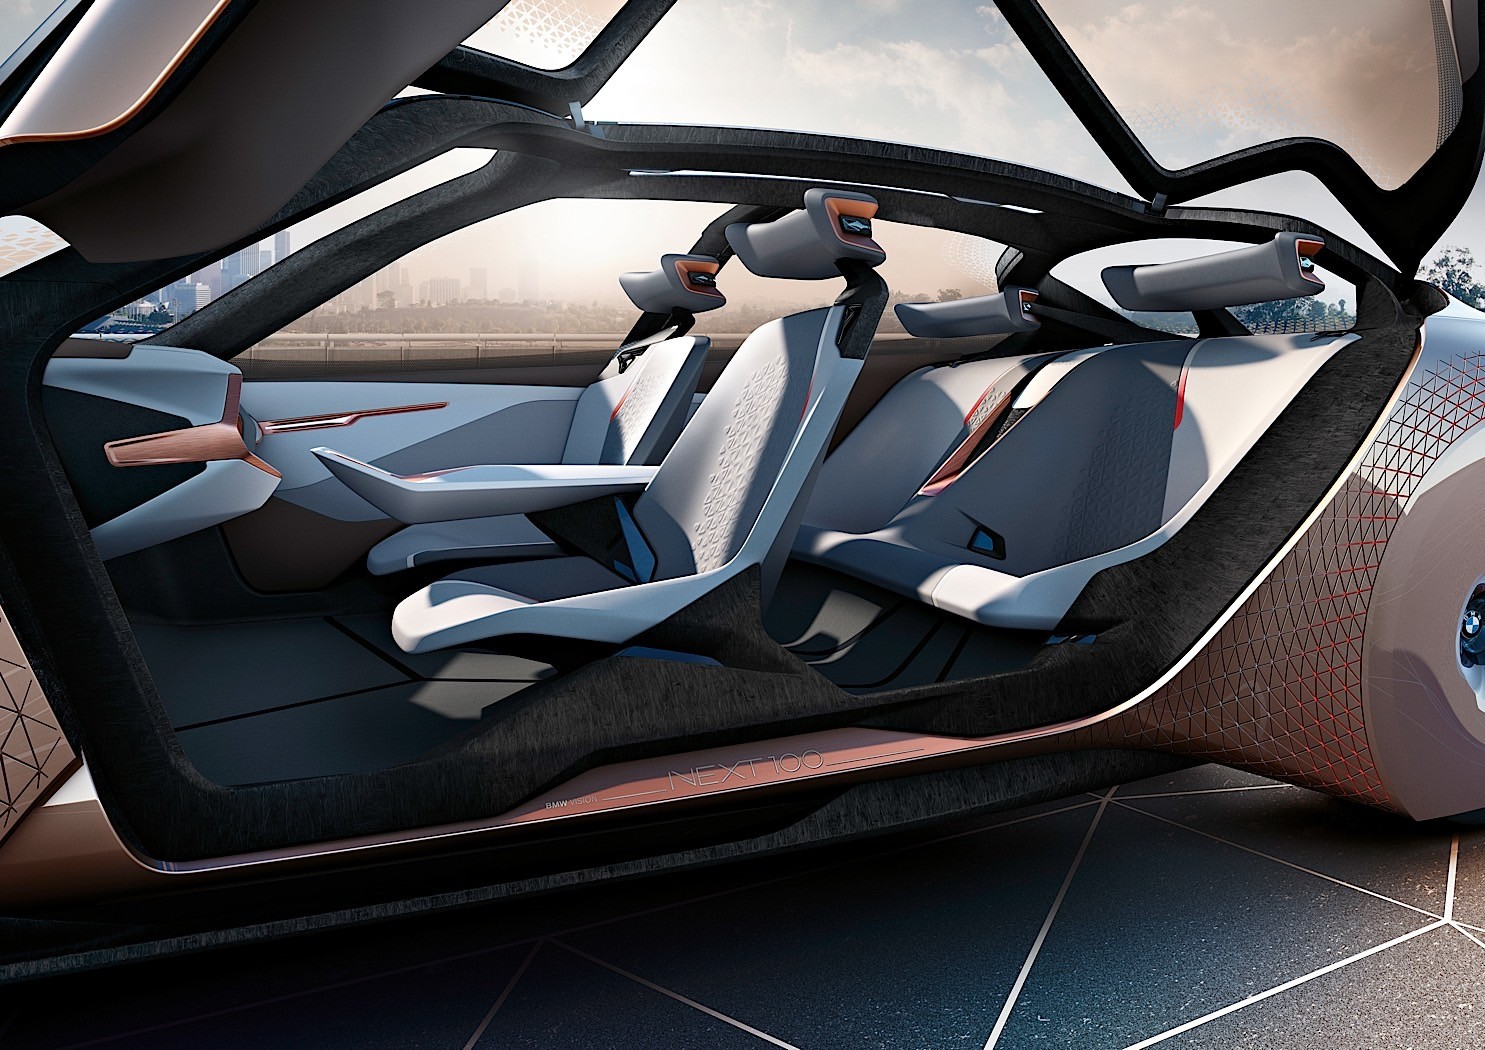 Bmw Vision Next 100 Futuristic Moving Wheel Arches And Dash In The Flesh Autoevolution